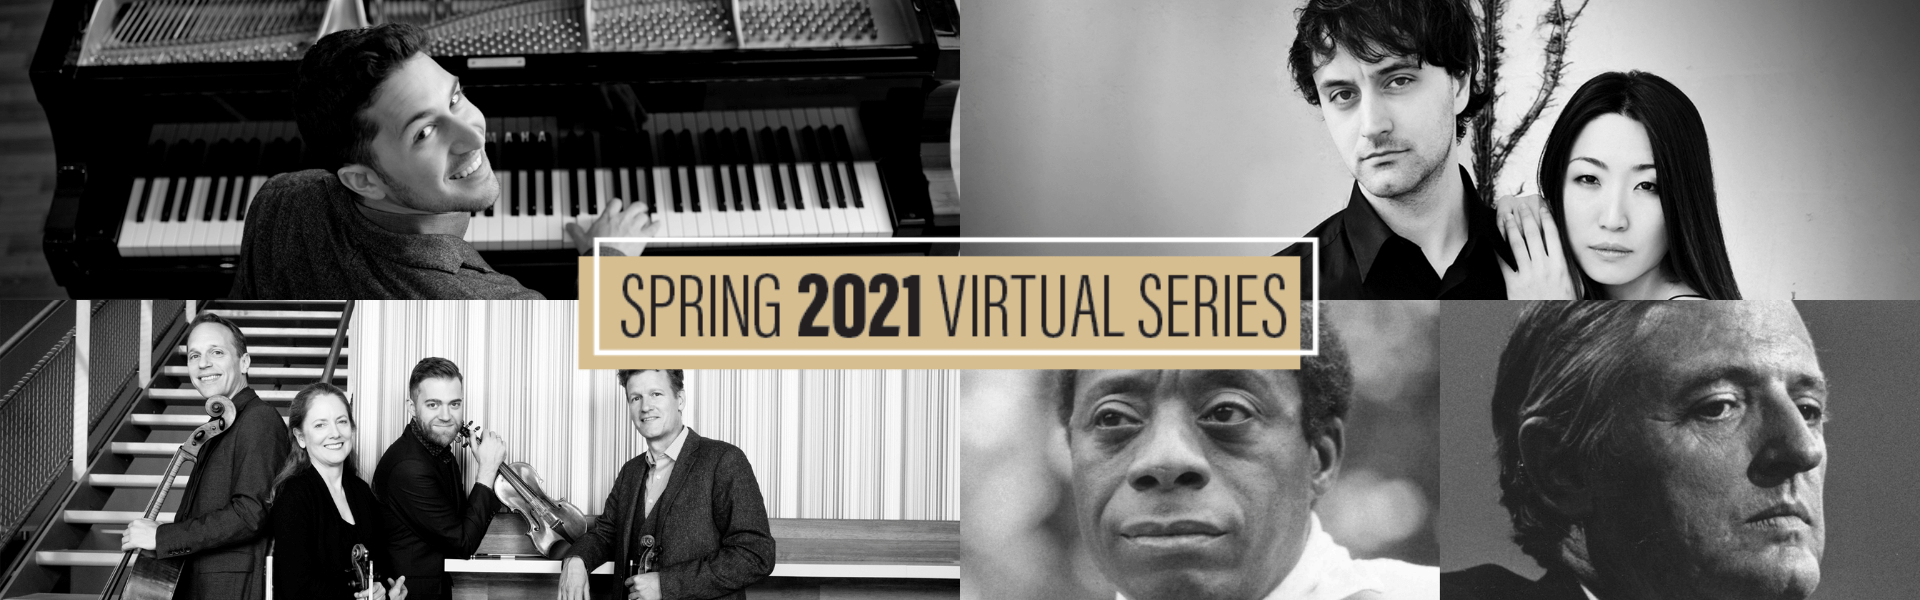 Purdue Convocations announces Spring 2021 virtual events